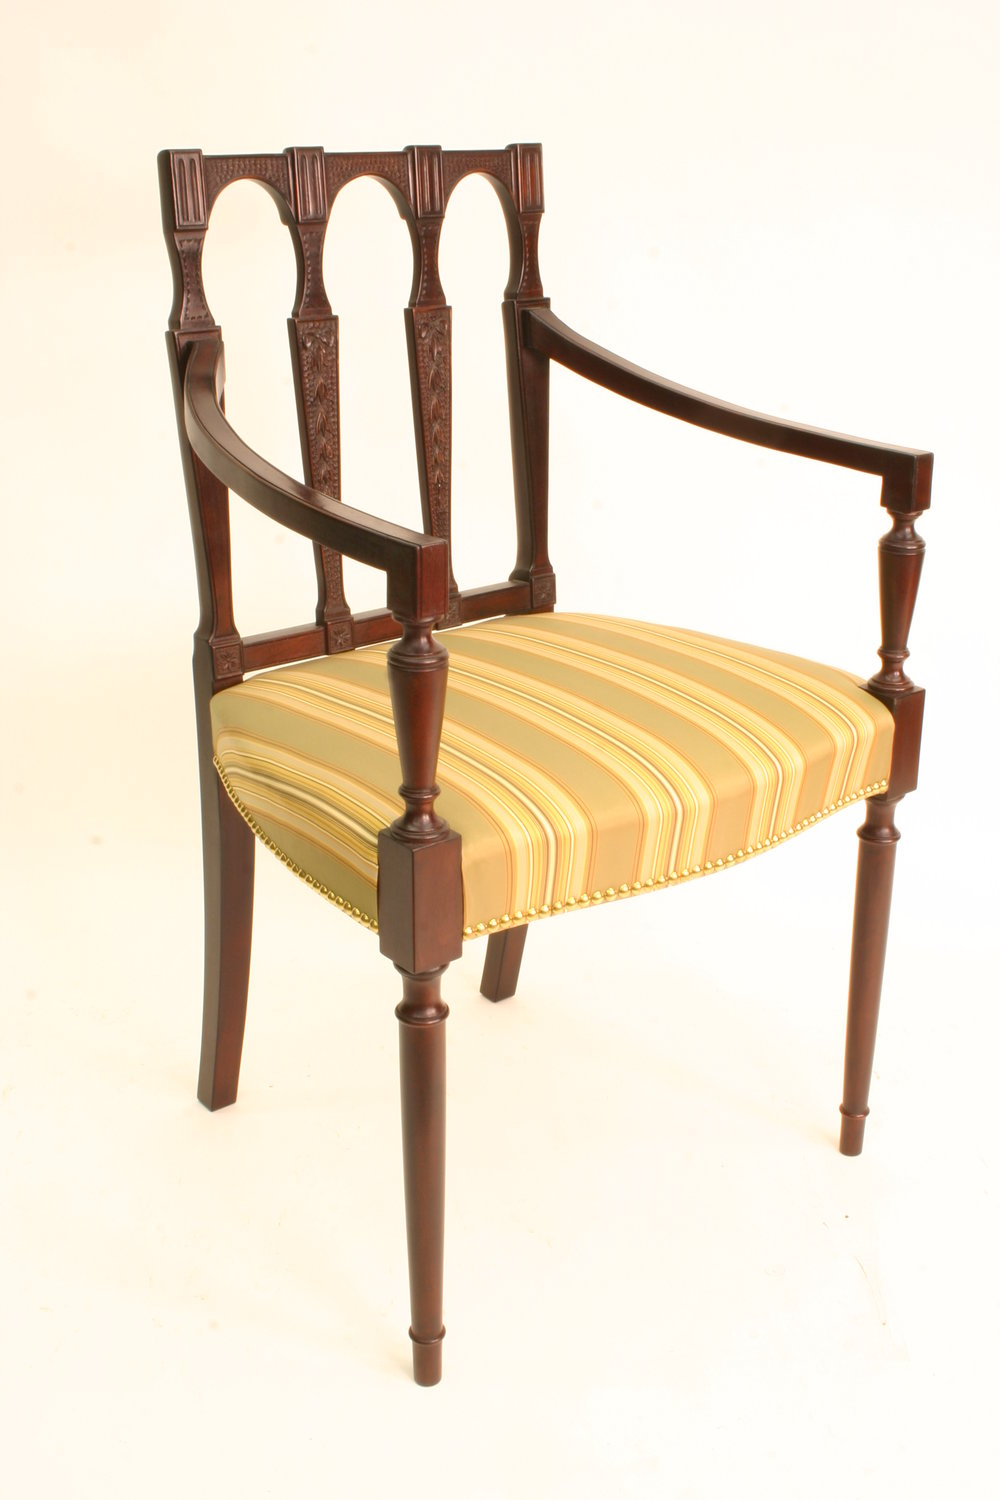 "Artisanship ""Reproduction Sheraton Arm Chairs"" Philip C. Lowe"